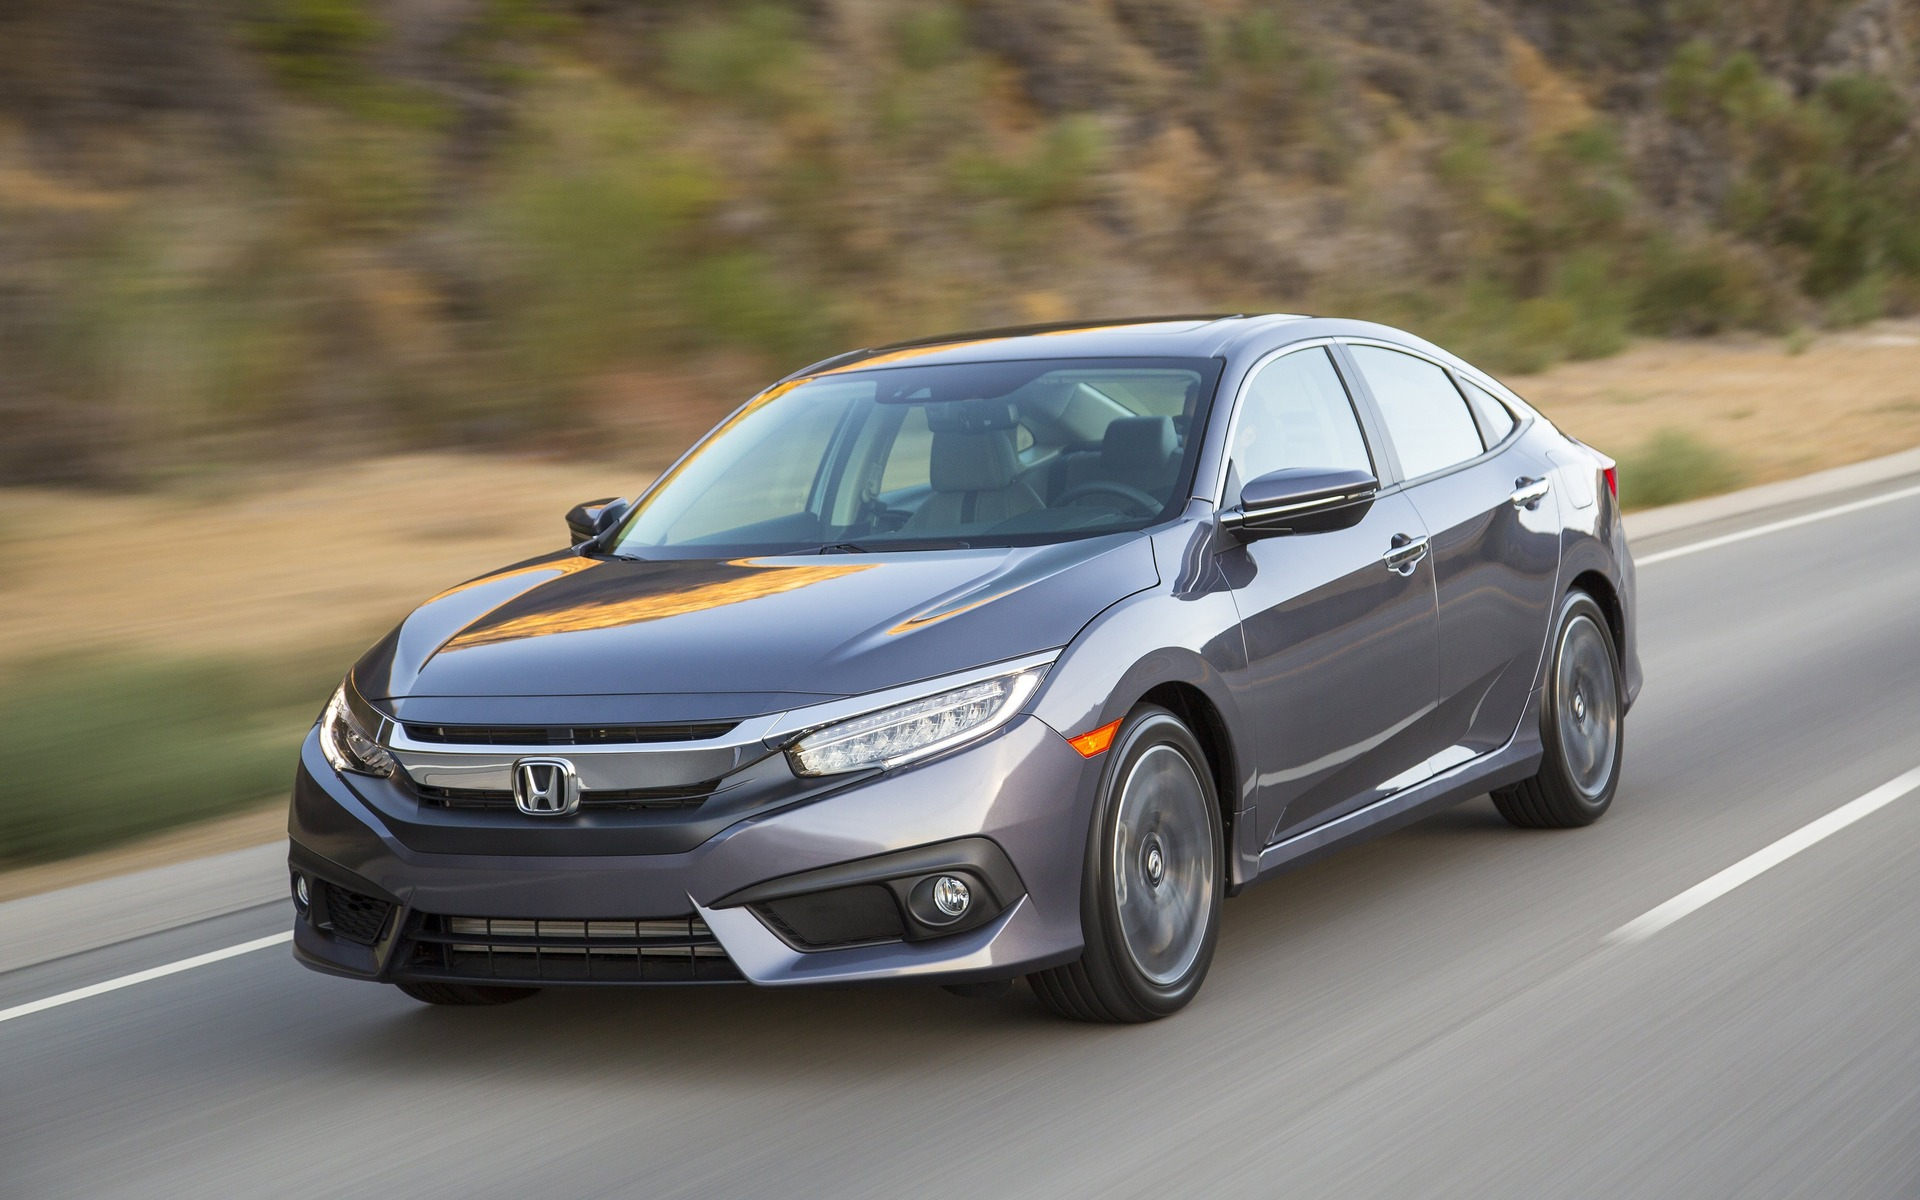 2018 Accord Towing Capacity U003eu003e Top 10 New Features For The 2016 Honda Civic